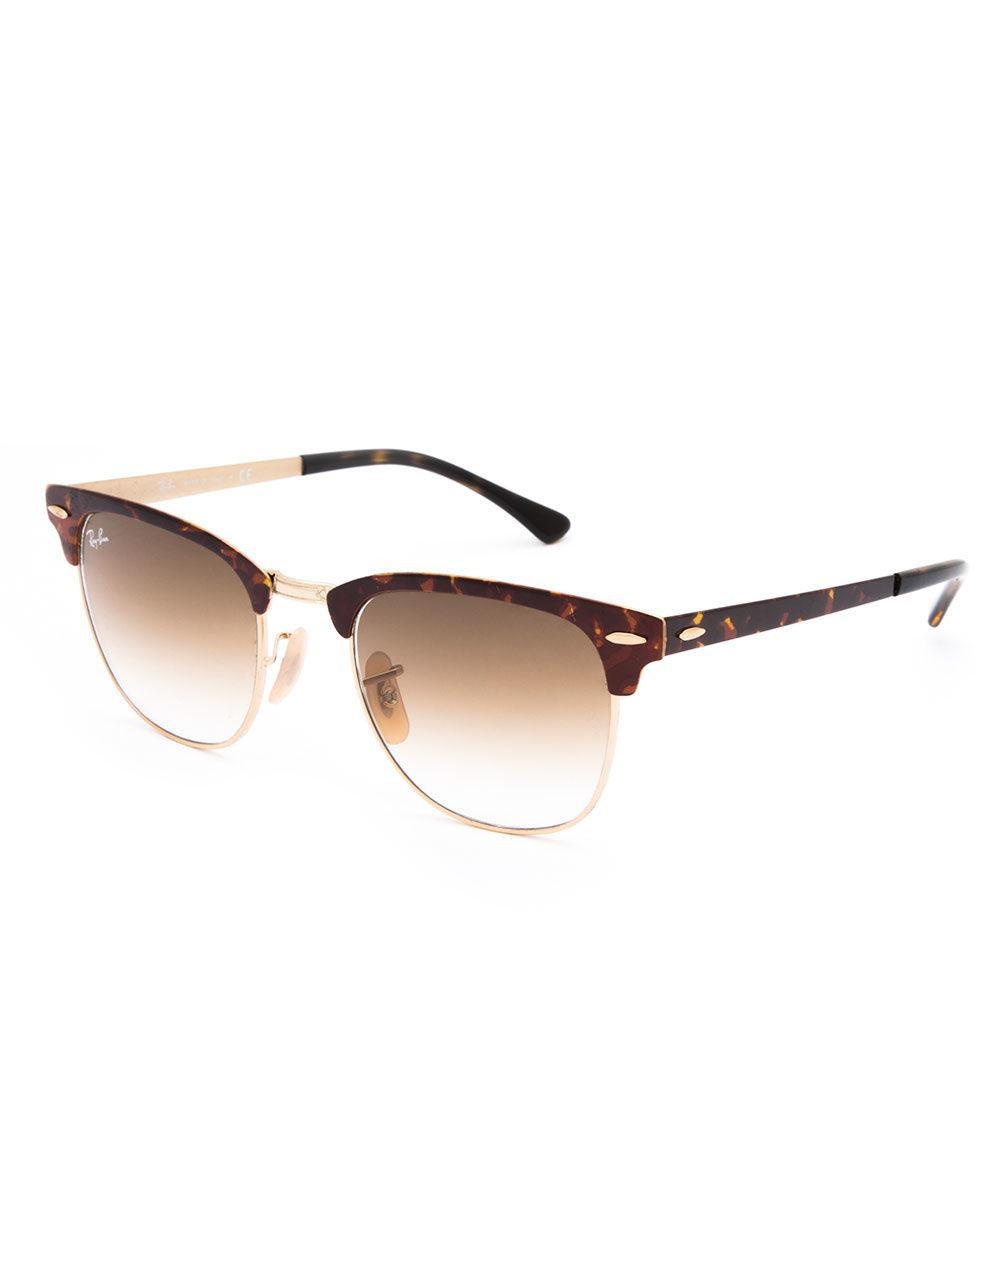 f7e006ffce Ray-Ban. Women s Clubmaster Metal Tortoise   Light Brown Gradient Sunglasses